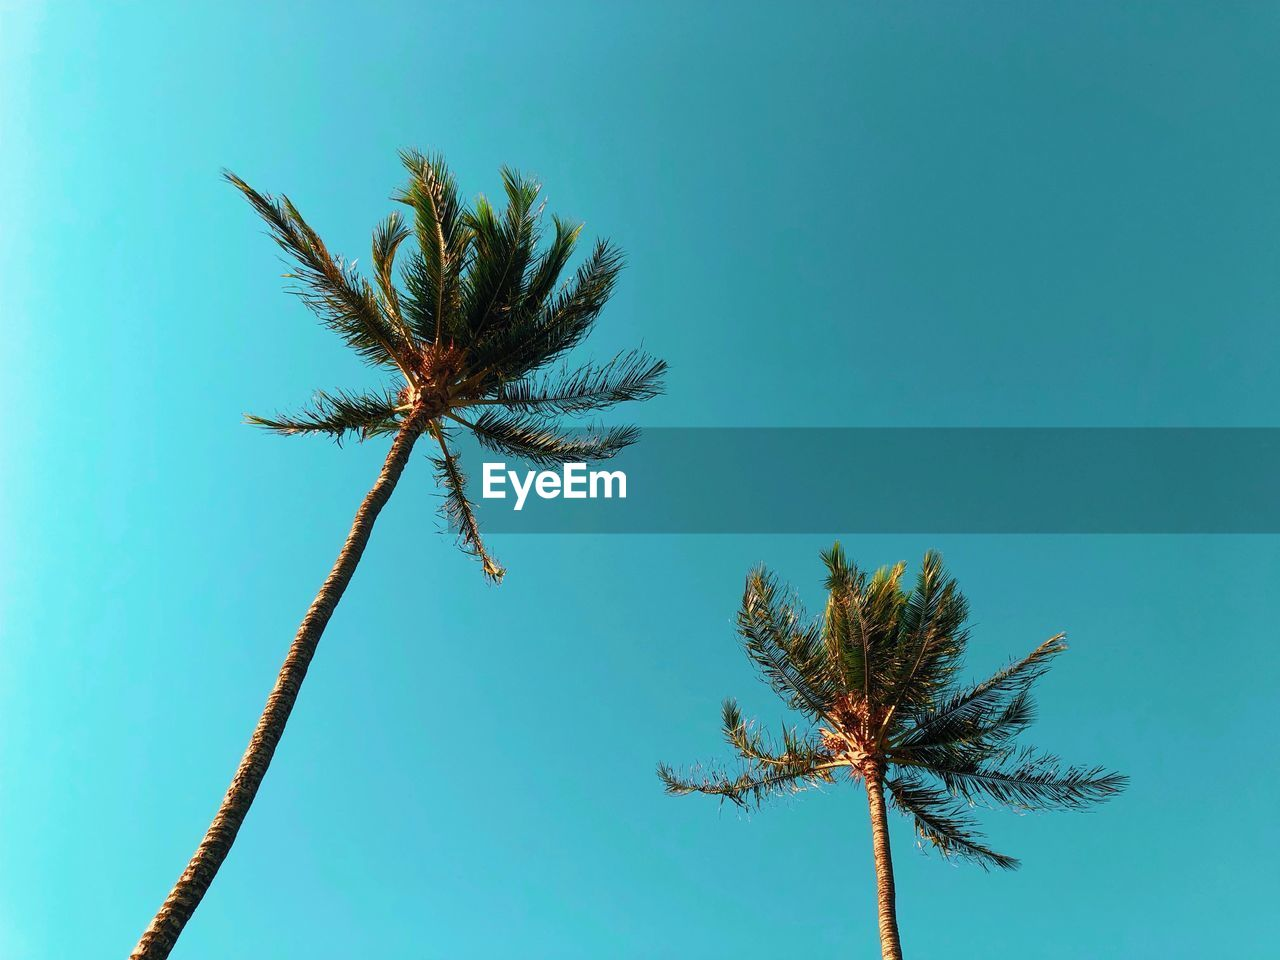 sky, plant, growth, tropical climate, low angle view, palm tree, nature, tree, no people, beauty in nature, day, clear sky, tranquility, tree trunk, trunk, blue, coconut palm tree, outdoors, tall - high, tropical tree, palm leaf, spiky